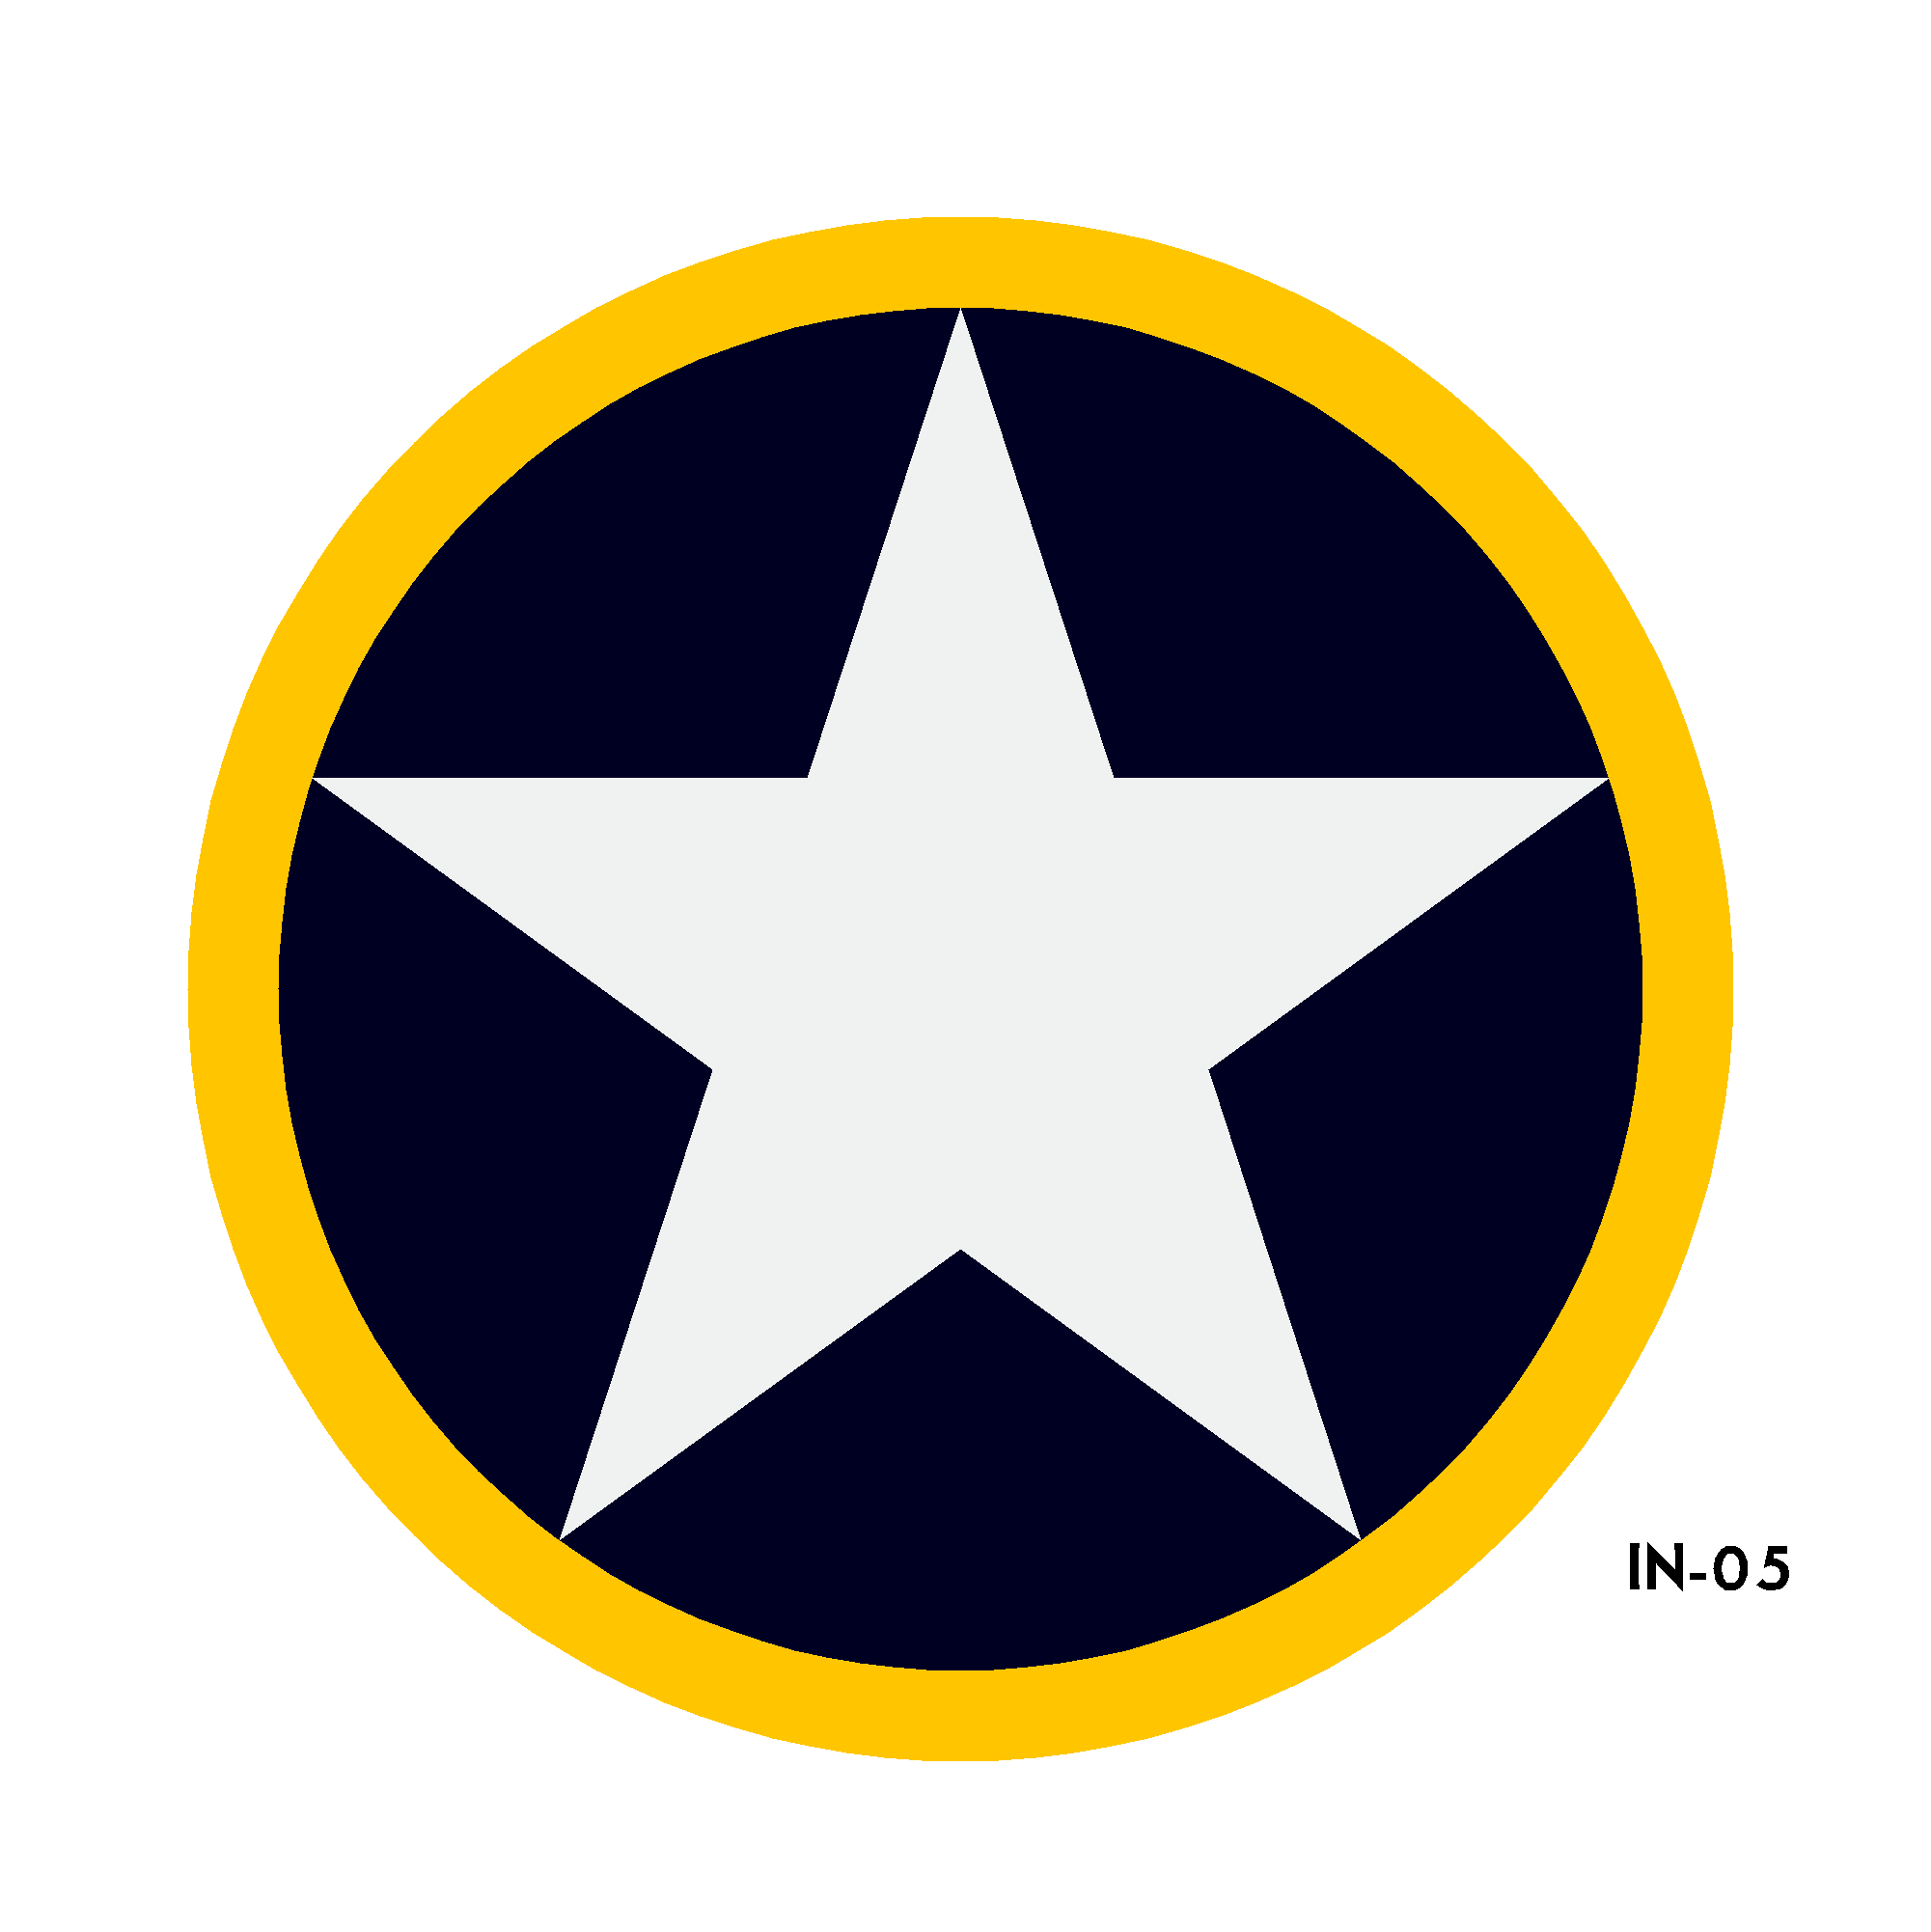 U.S. Army Air Force National Star in Circle with Yellow Outline Insignia Vinyl - Spec. No. 24102-K